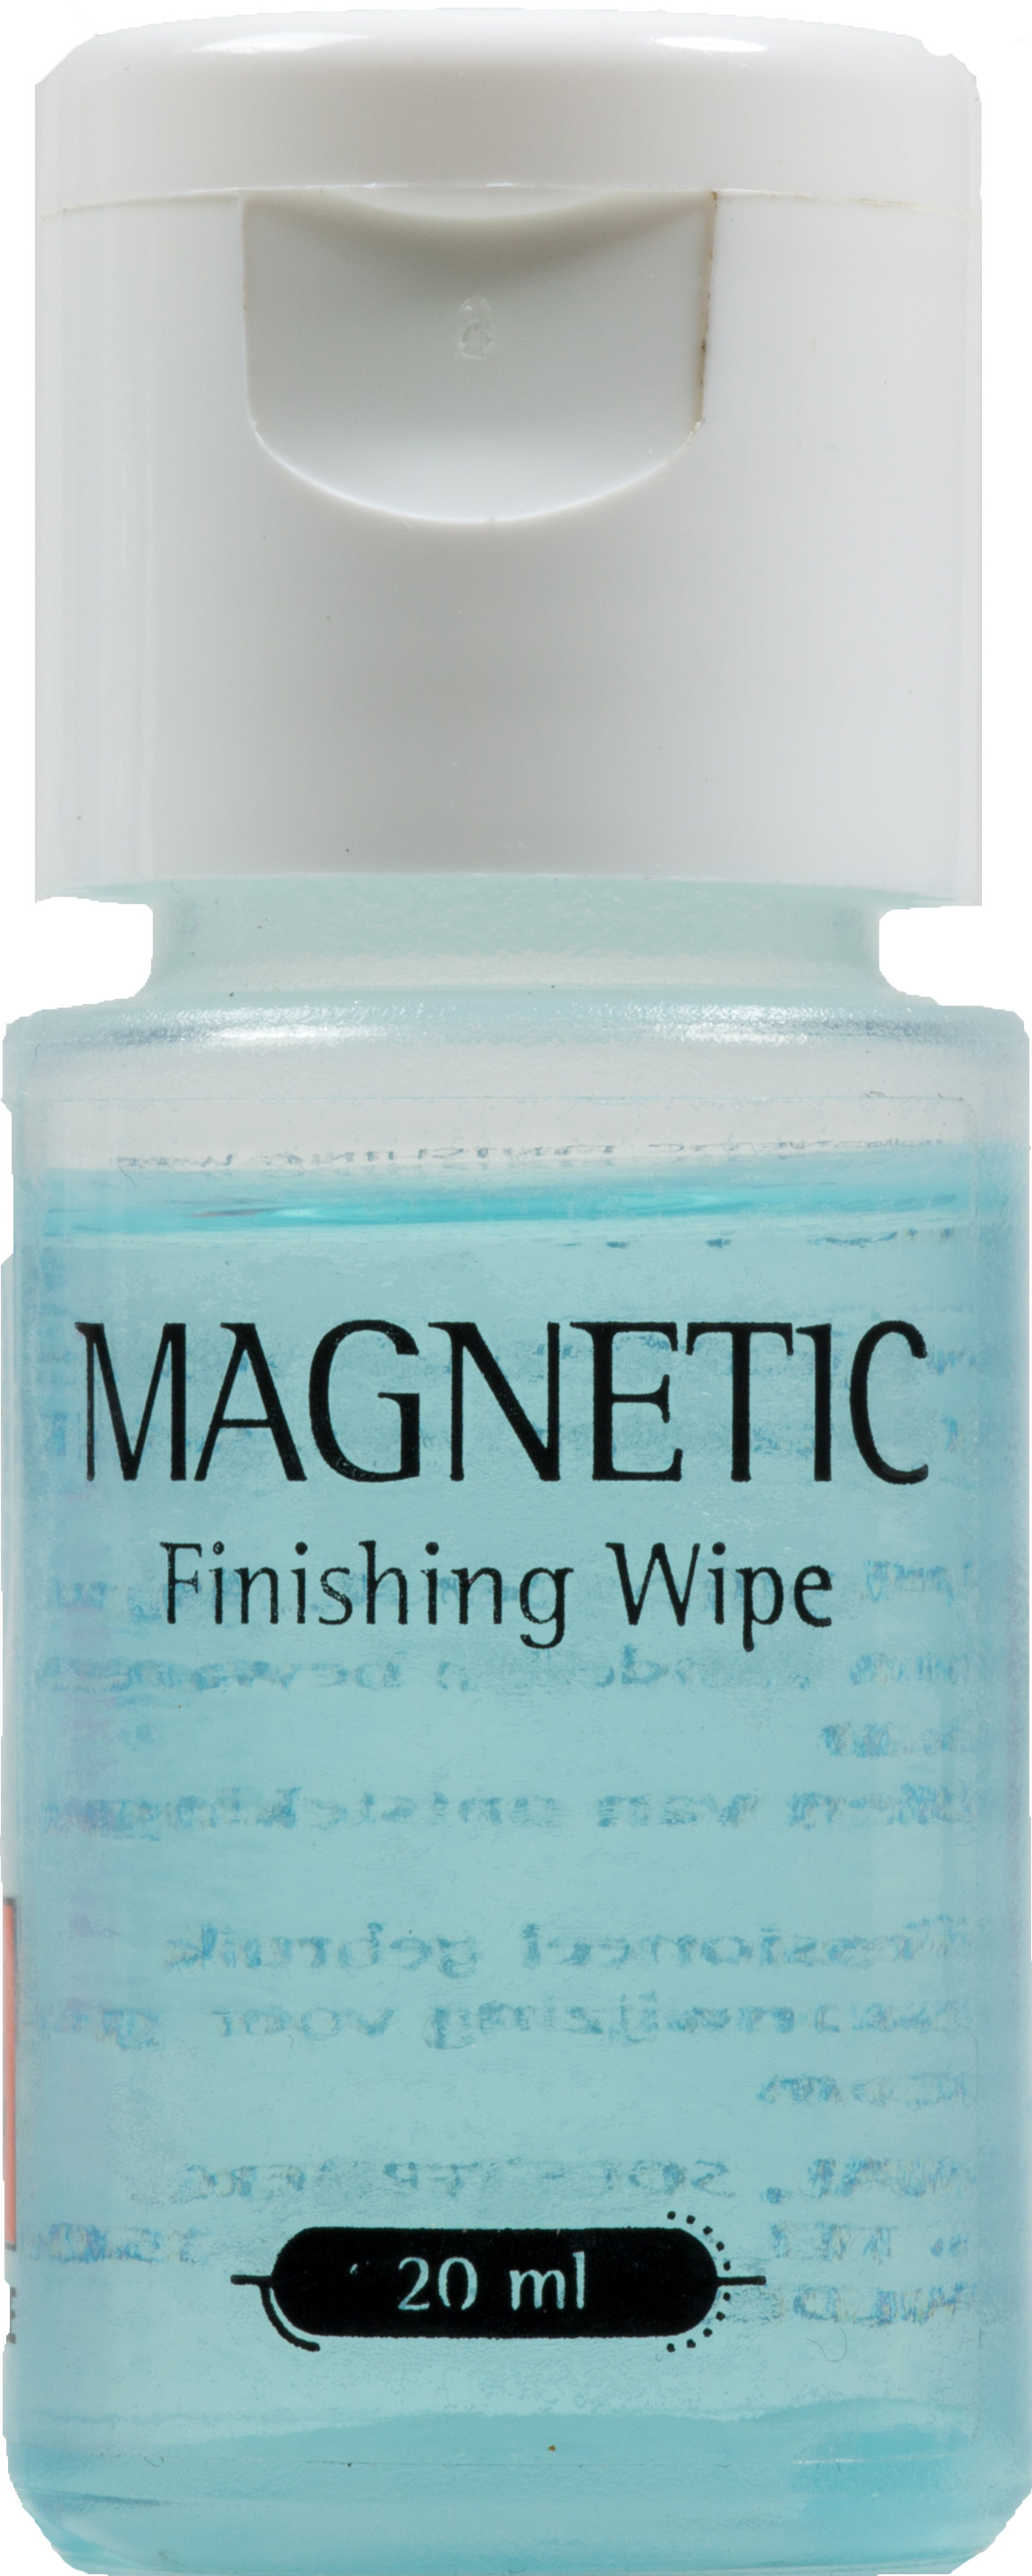 Finishing Wipe - 20 ml